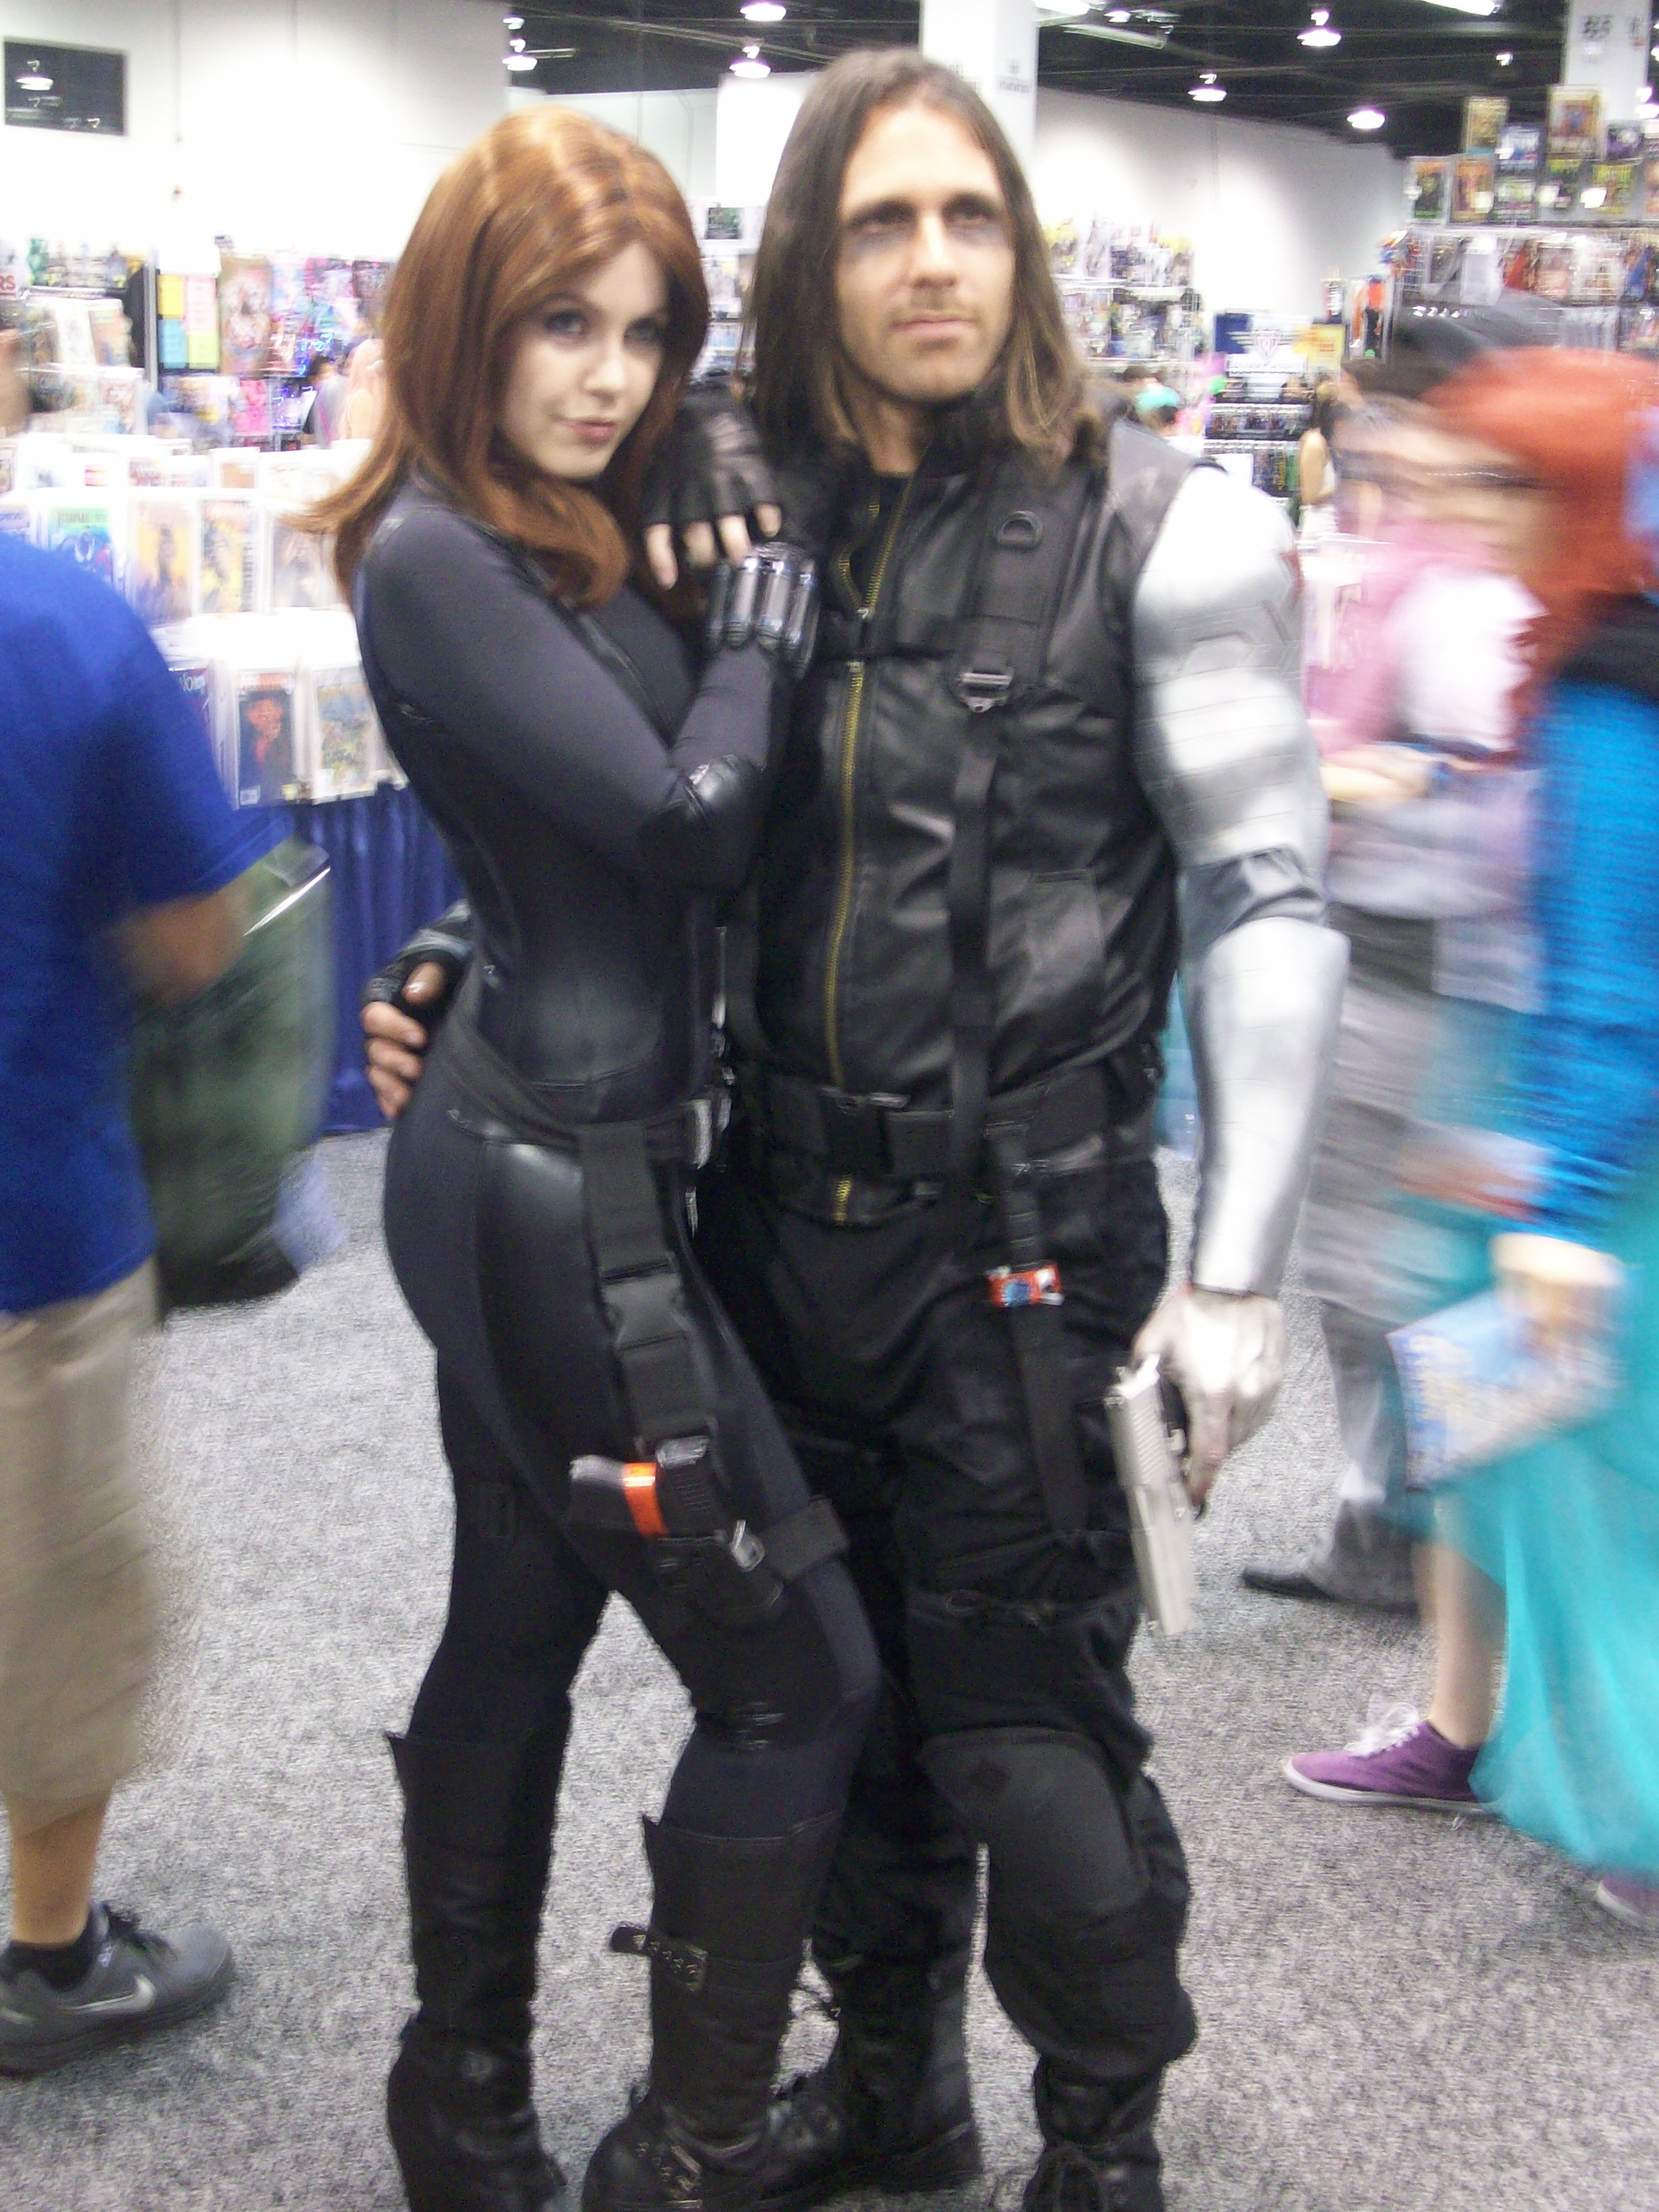 speaking of winter soldier cosplay the amount of couple cosplays and    Winter Soldier Cosplay Wondercon 2014